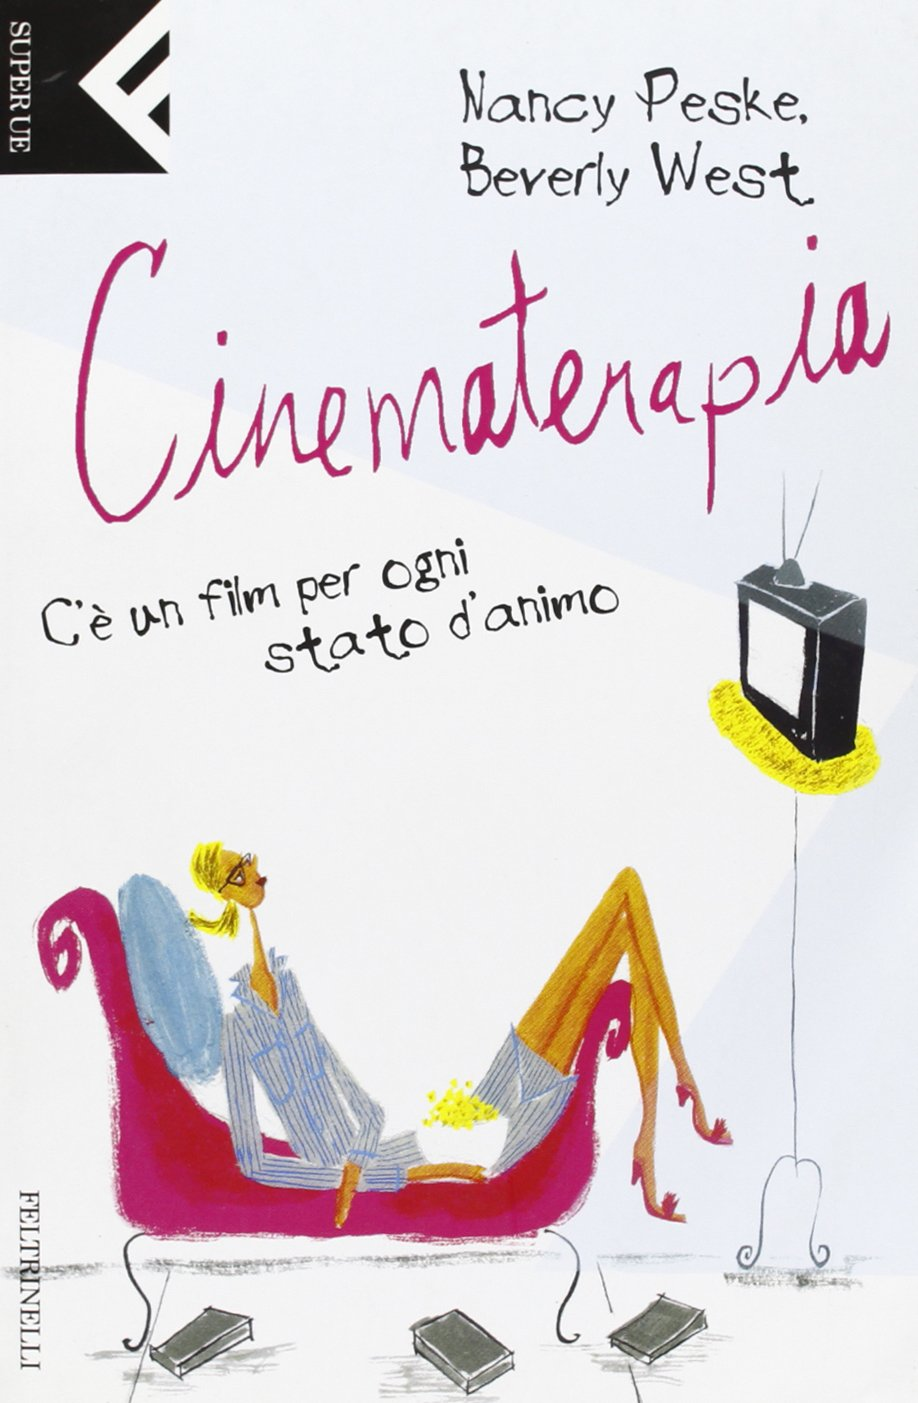 Cinematerapia. C'è un film per ogni stato d'animo Copertina flessibile – 19 gen 2004 Nancy Peske Beverly West A. Mioni Feltrinelli